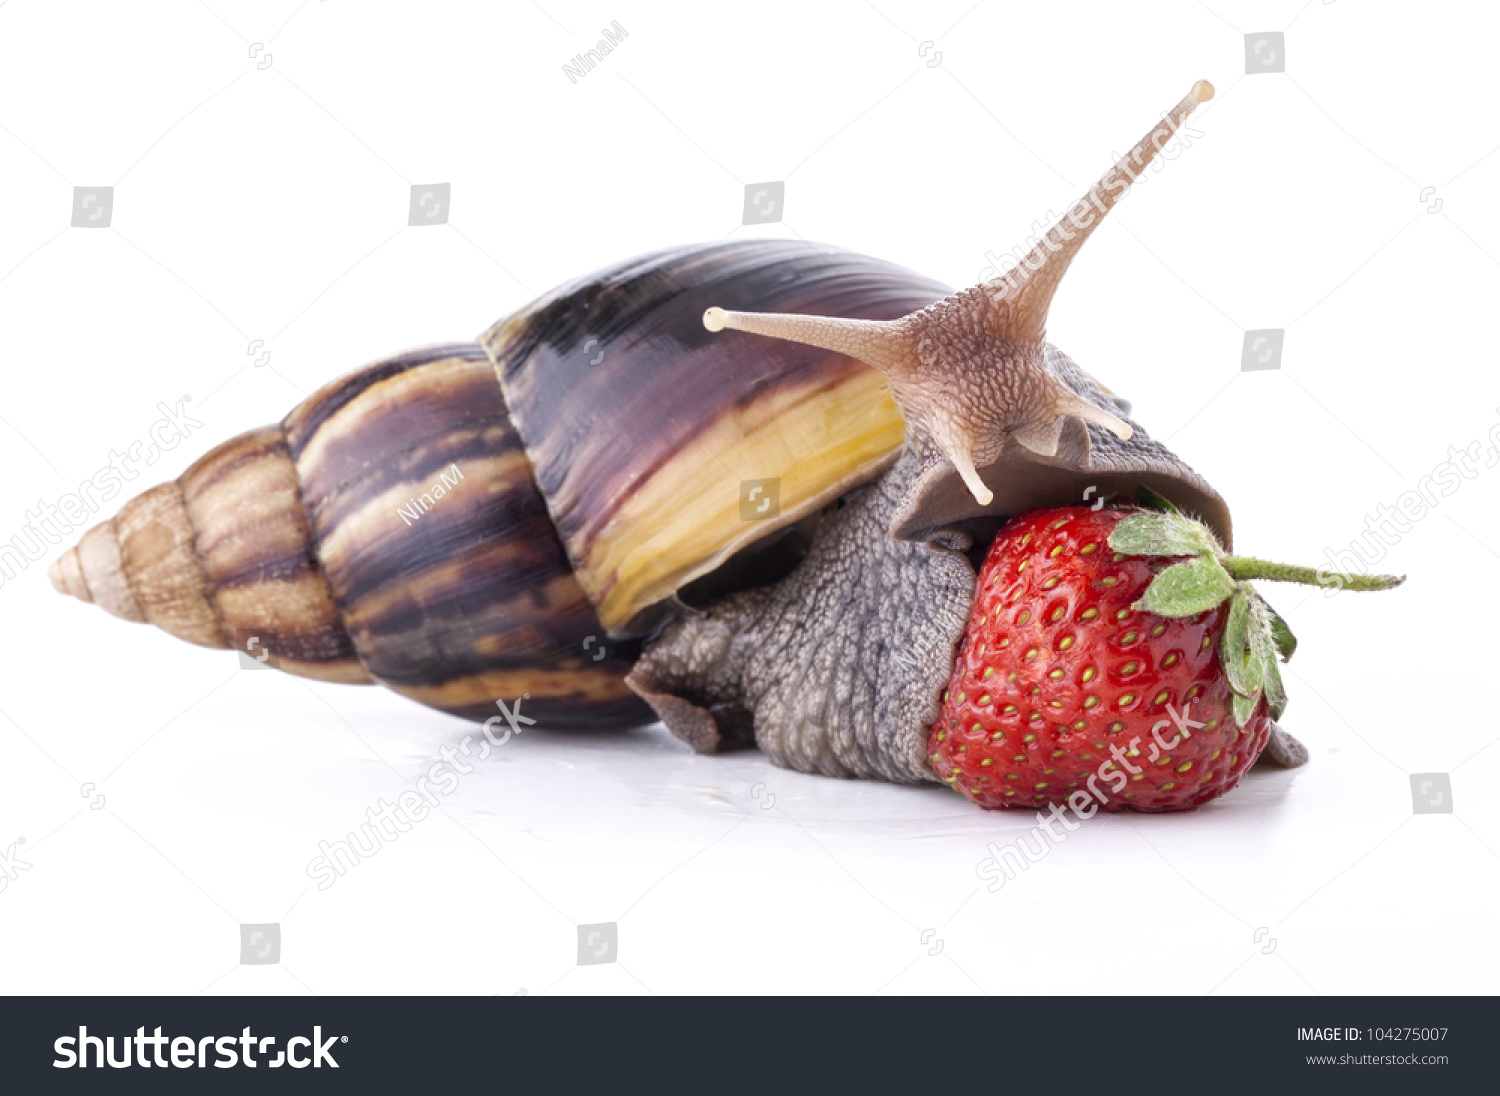 Giant african land snail eating - photo#1